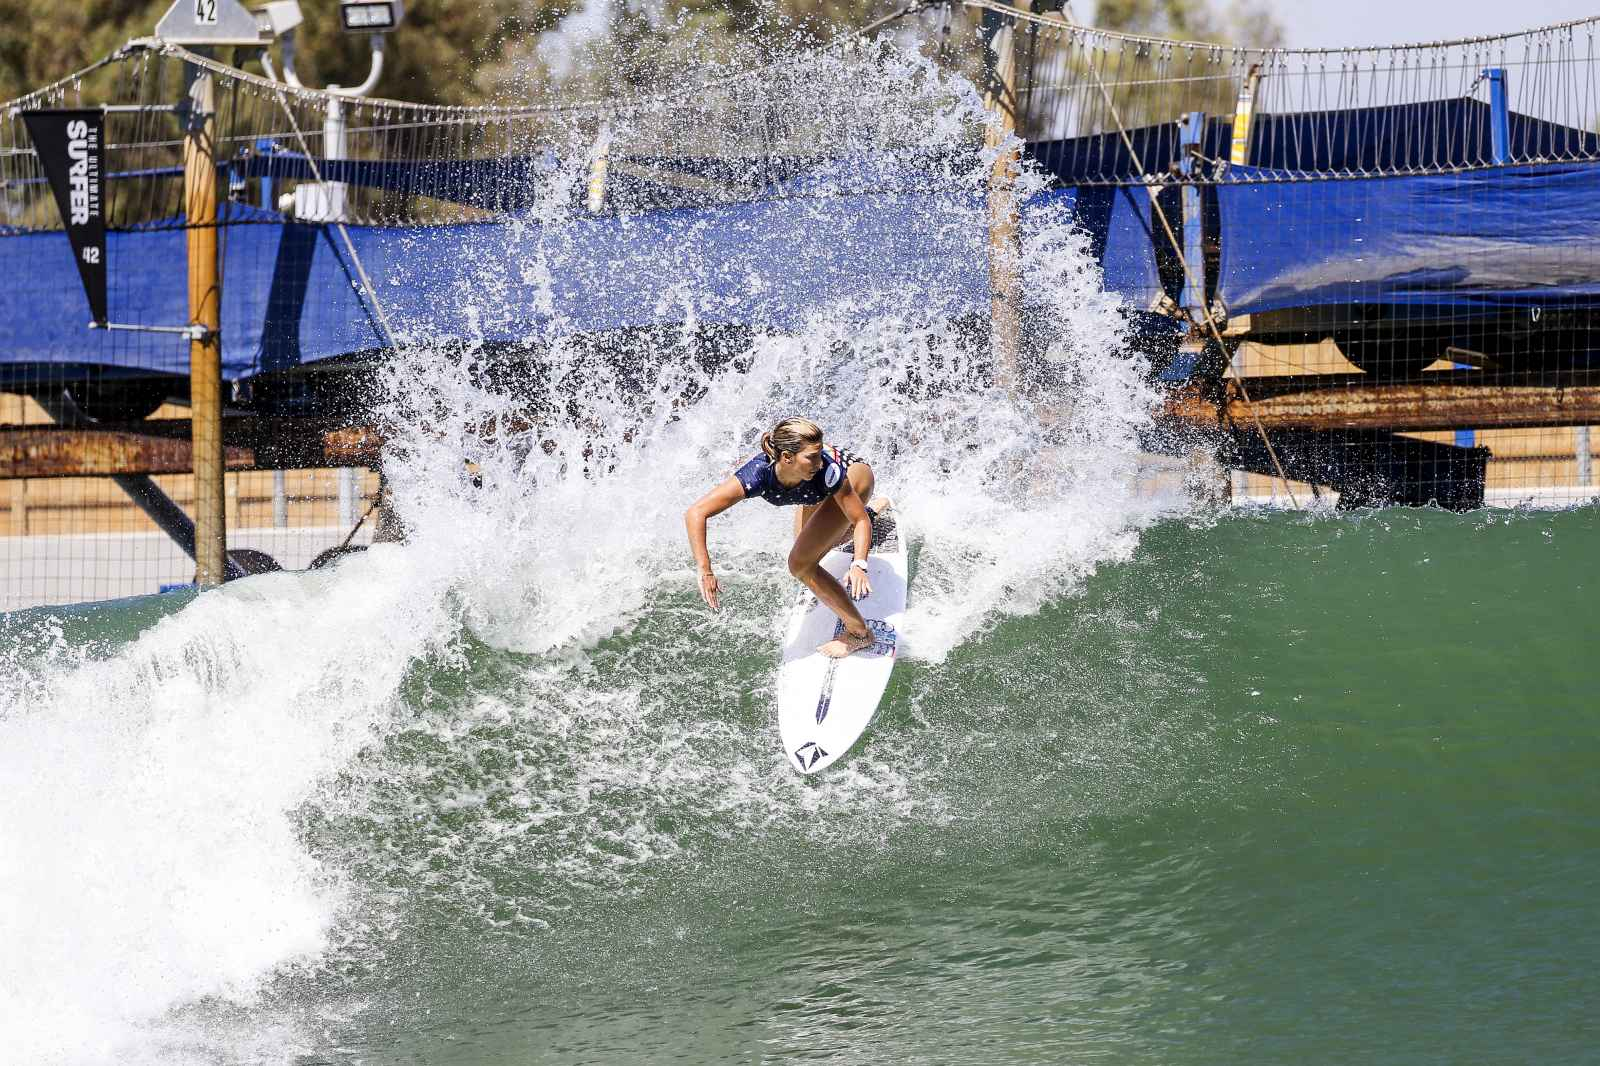 Take The First Look At Surfing s Return As Teams Prepare To Rumble w Kelly Slater Kanoa Igarashi